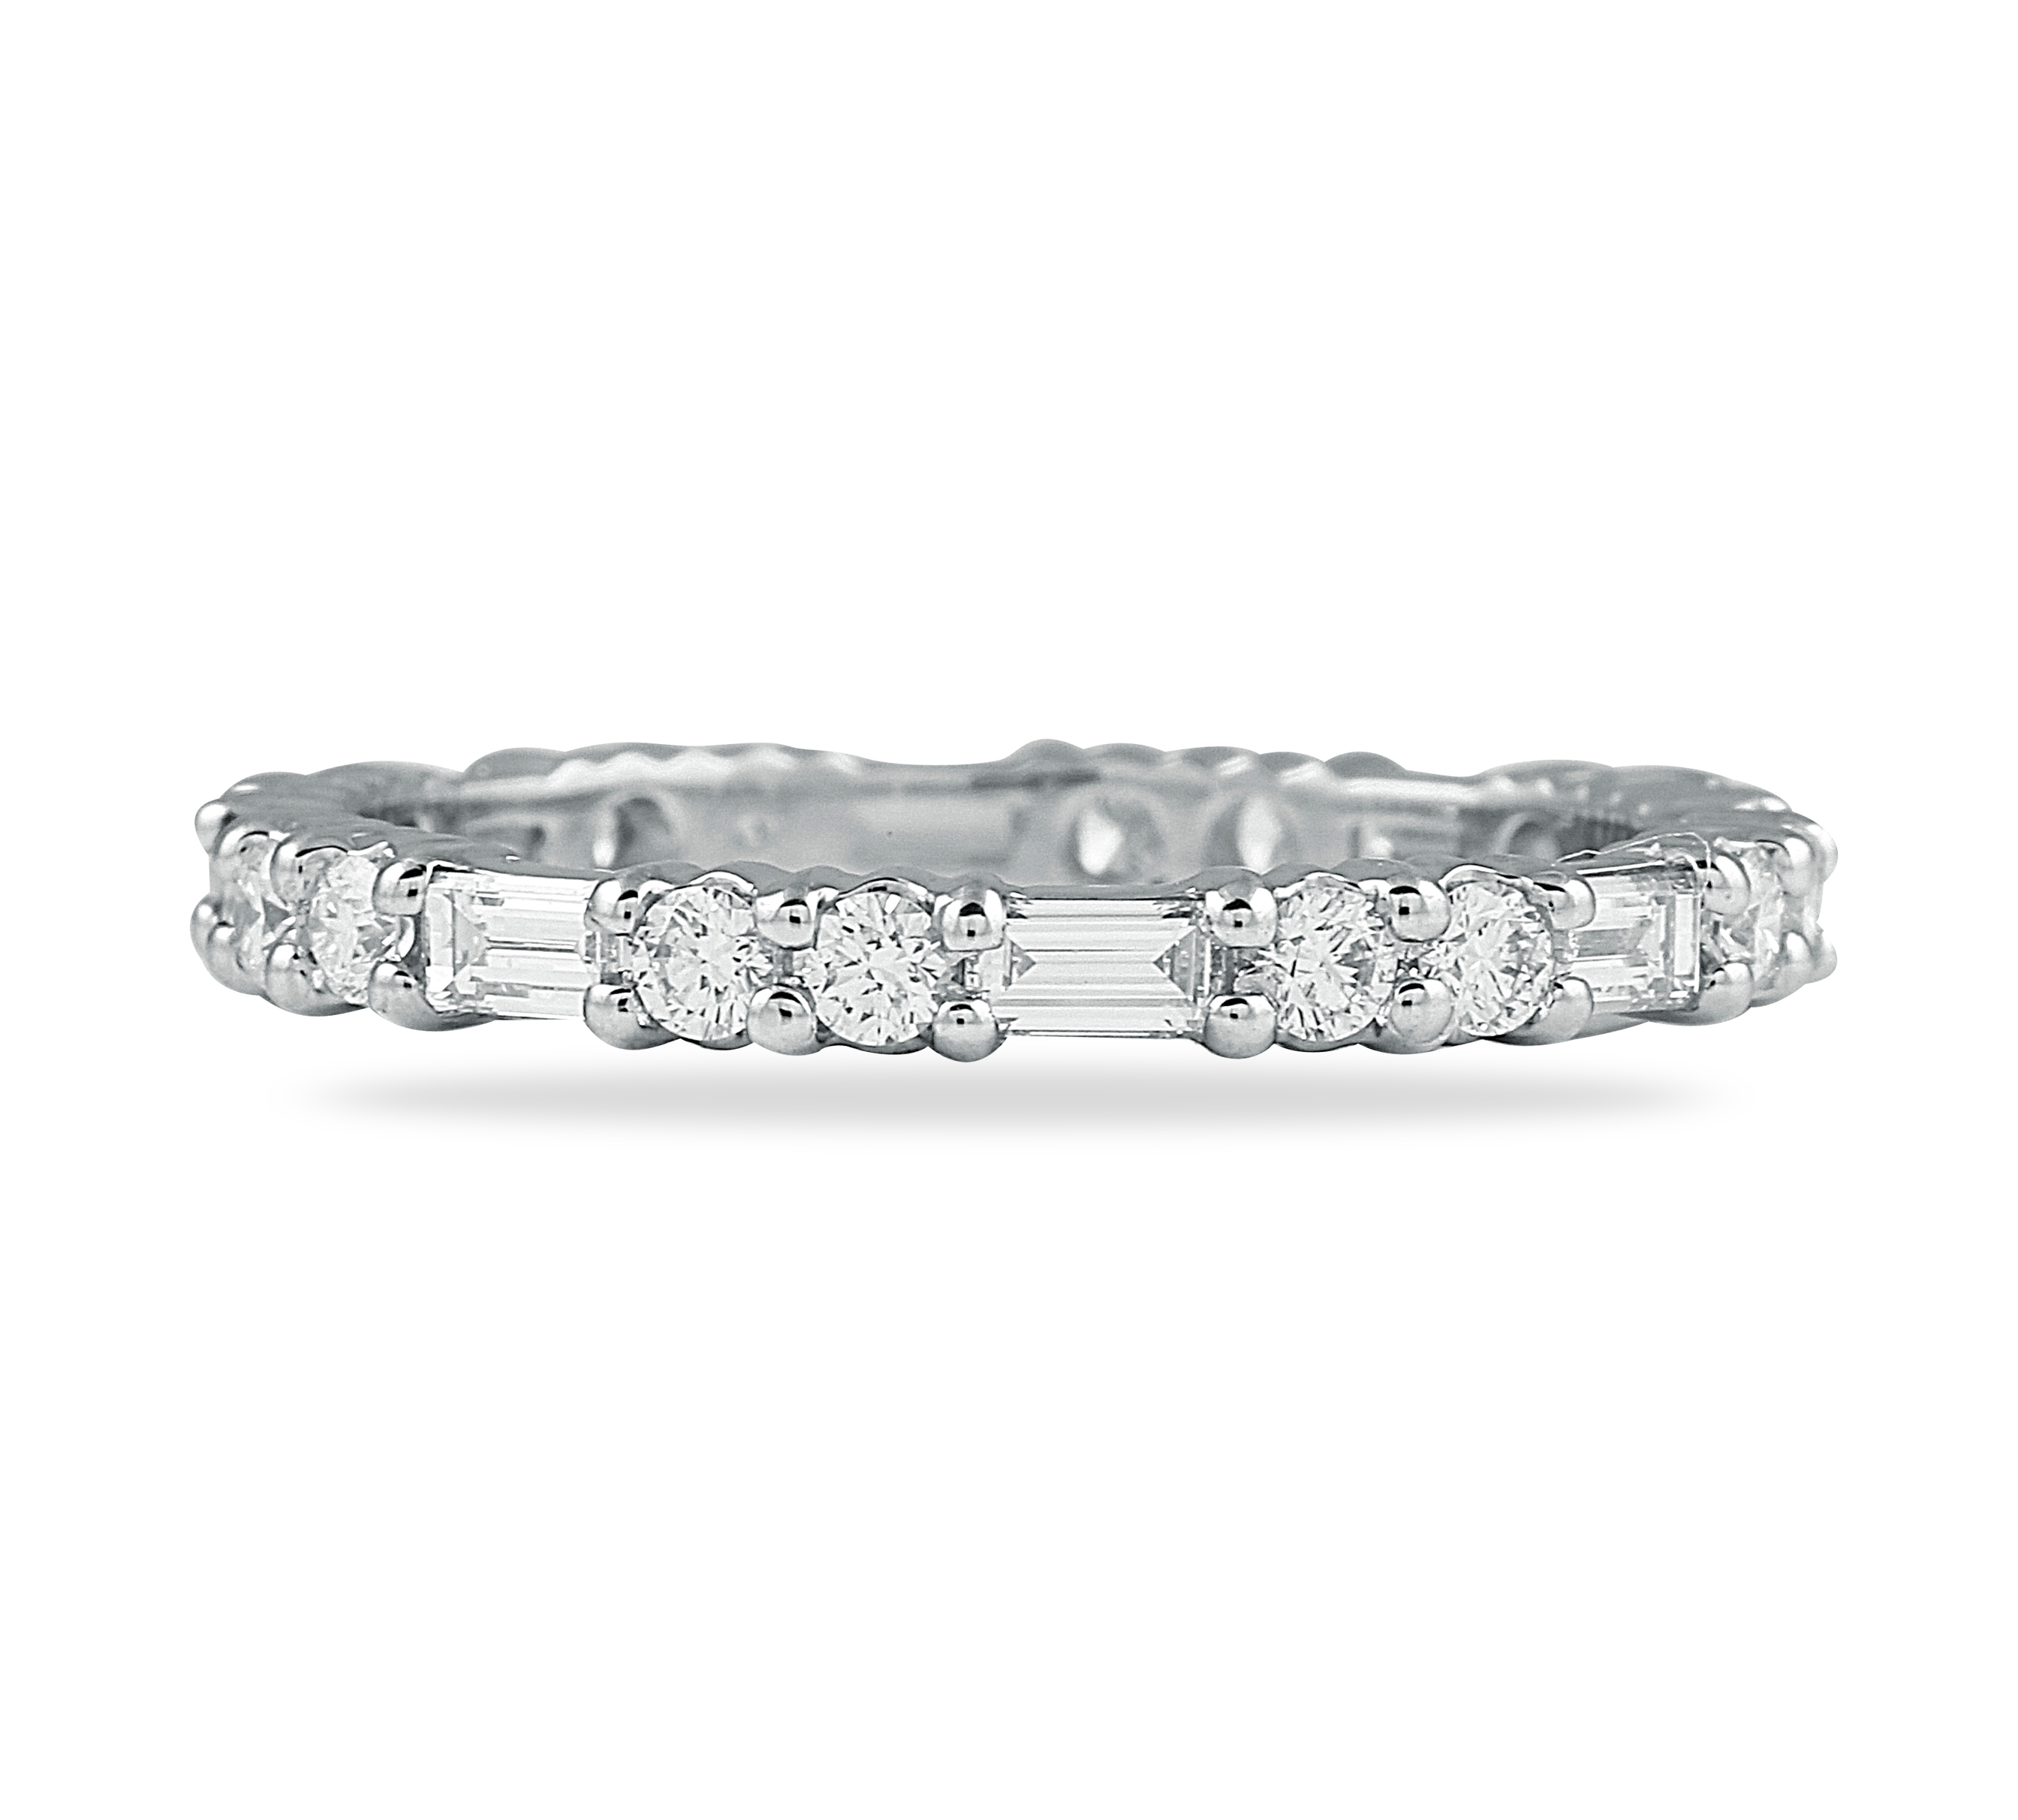 87 Ct Round And Baguette Diamond Shared Prong Eternity Band Inside Current Baguette And Round Diamond Alternating Vintage Style Anniversary Bands In White Gold (View 3 of 25)